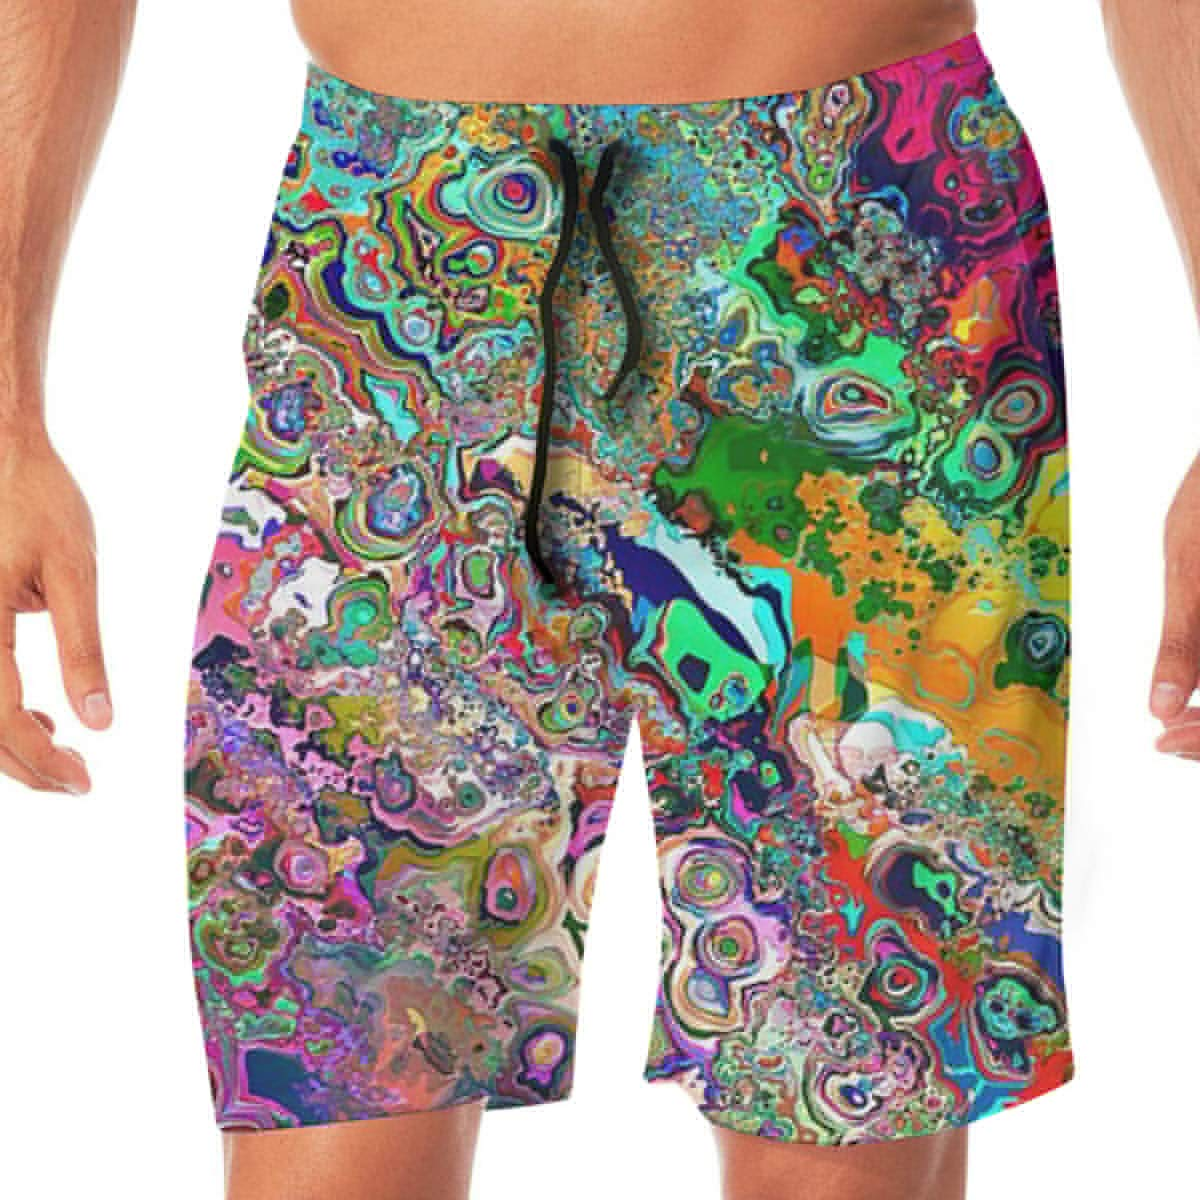 MaoYTUI Colored Psychedelic Trippy Art Mens Swim Trunks Boys Quick Dry Bathing Suits Drawstring Waist Beach Broad Shorts Swim Suit Beachwear with Mesh Lining